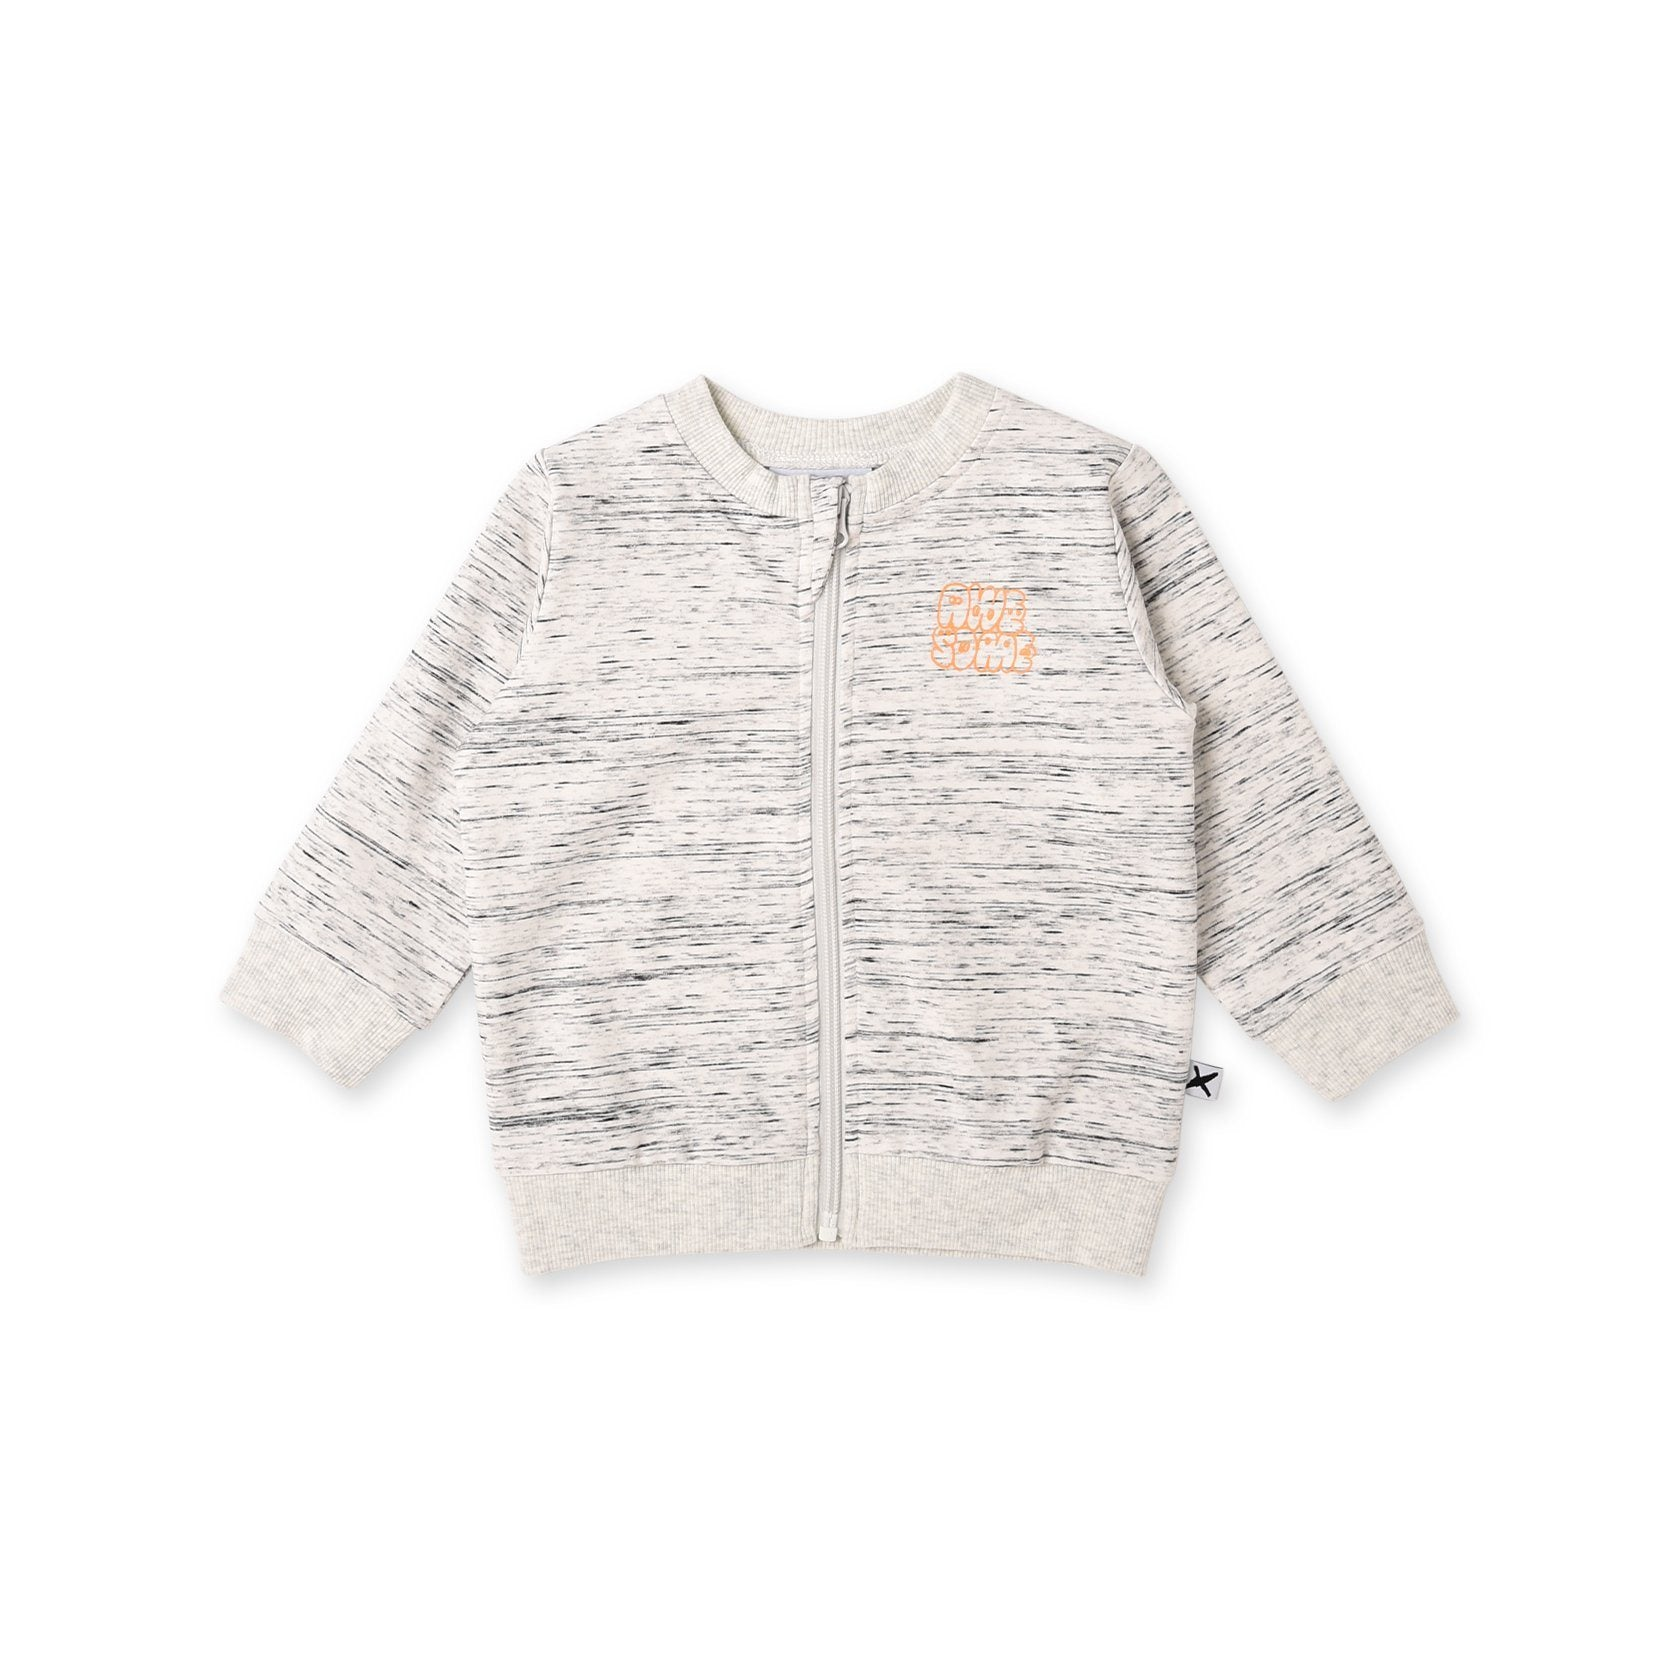 Awesome Flecked Zip Up Baby Crew